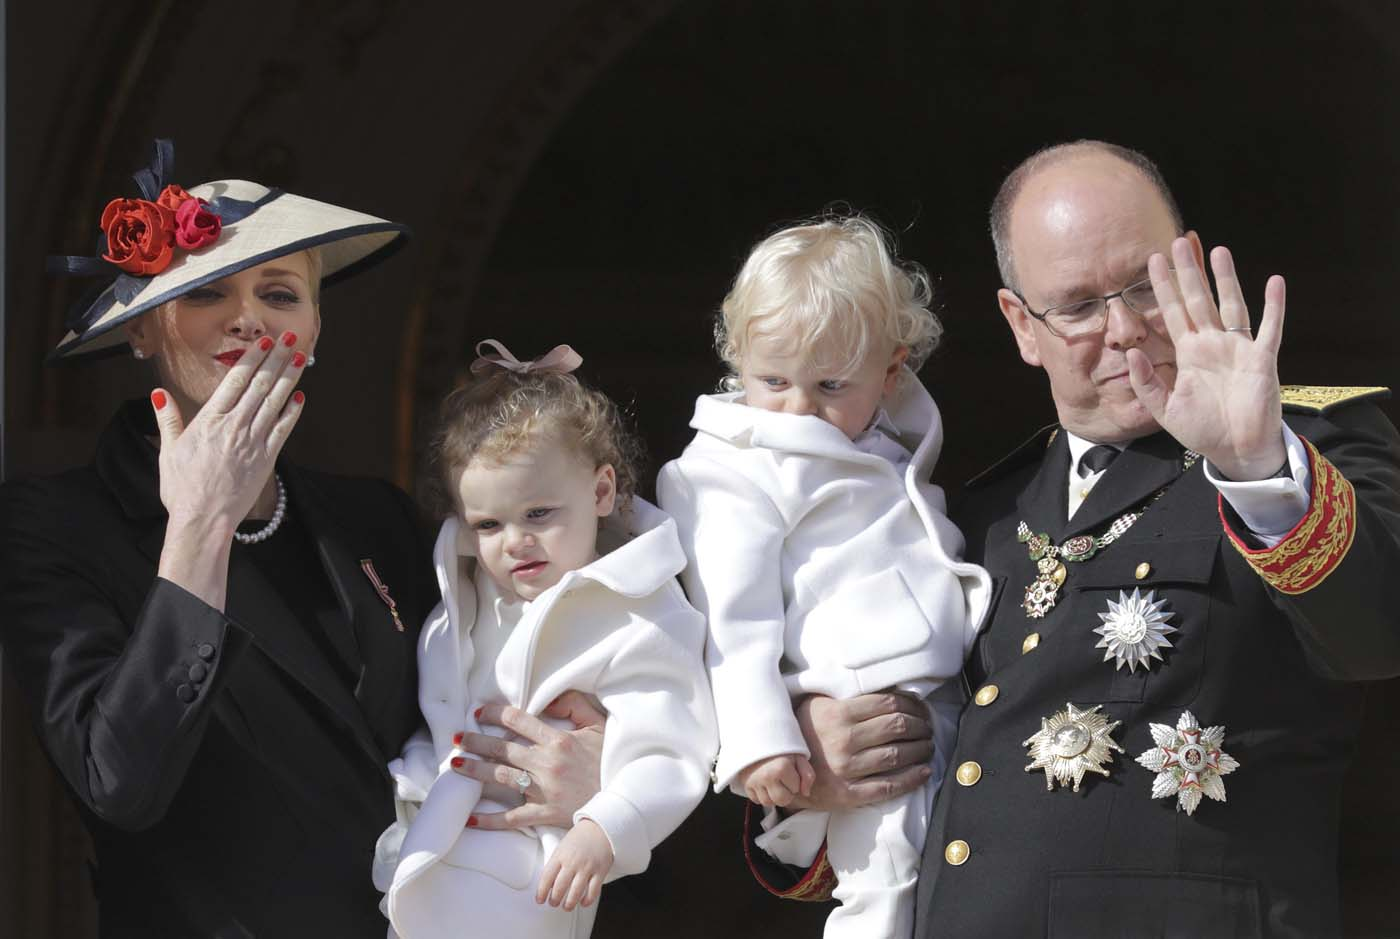 Prince Albert II of Monaco and his wife Princess Charlene hold their twins Prince Jacques and Princess Gabriella as they stand at the Palace Balcony during Monaco's National Day November 19, 2016. REUTERS/Eric Gaillard